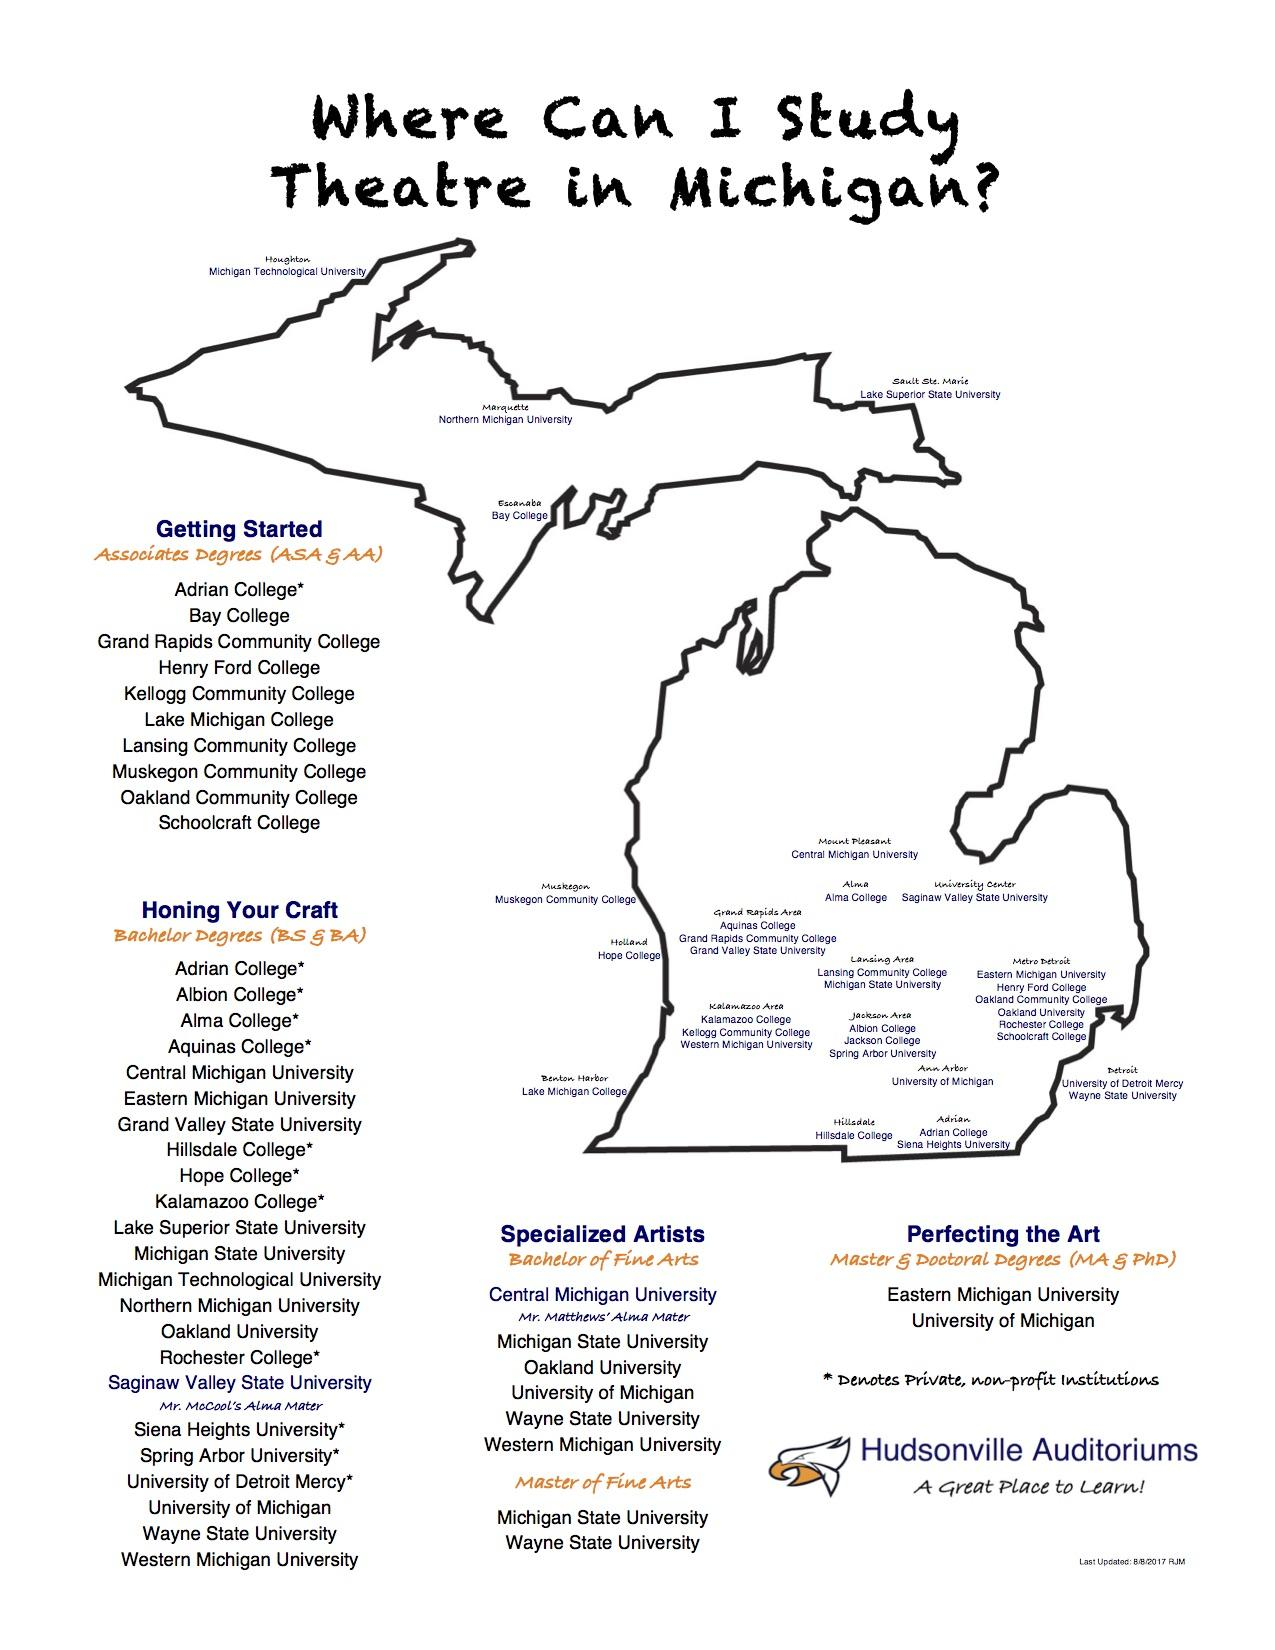 Infographic showing the name and location of every public and private higher educational institution in the State of Michigan offering a theatre degree